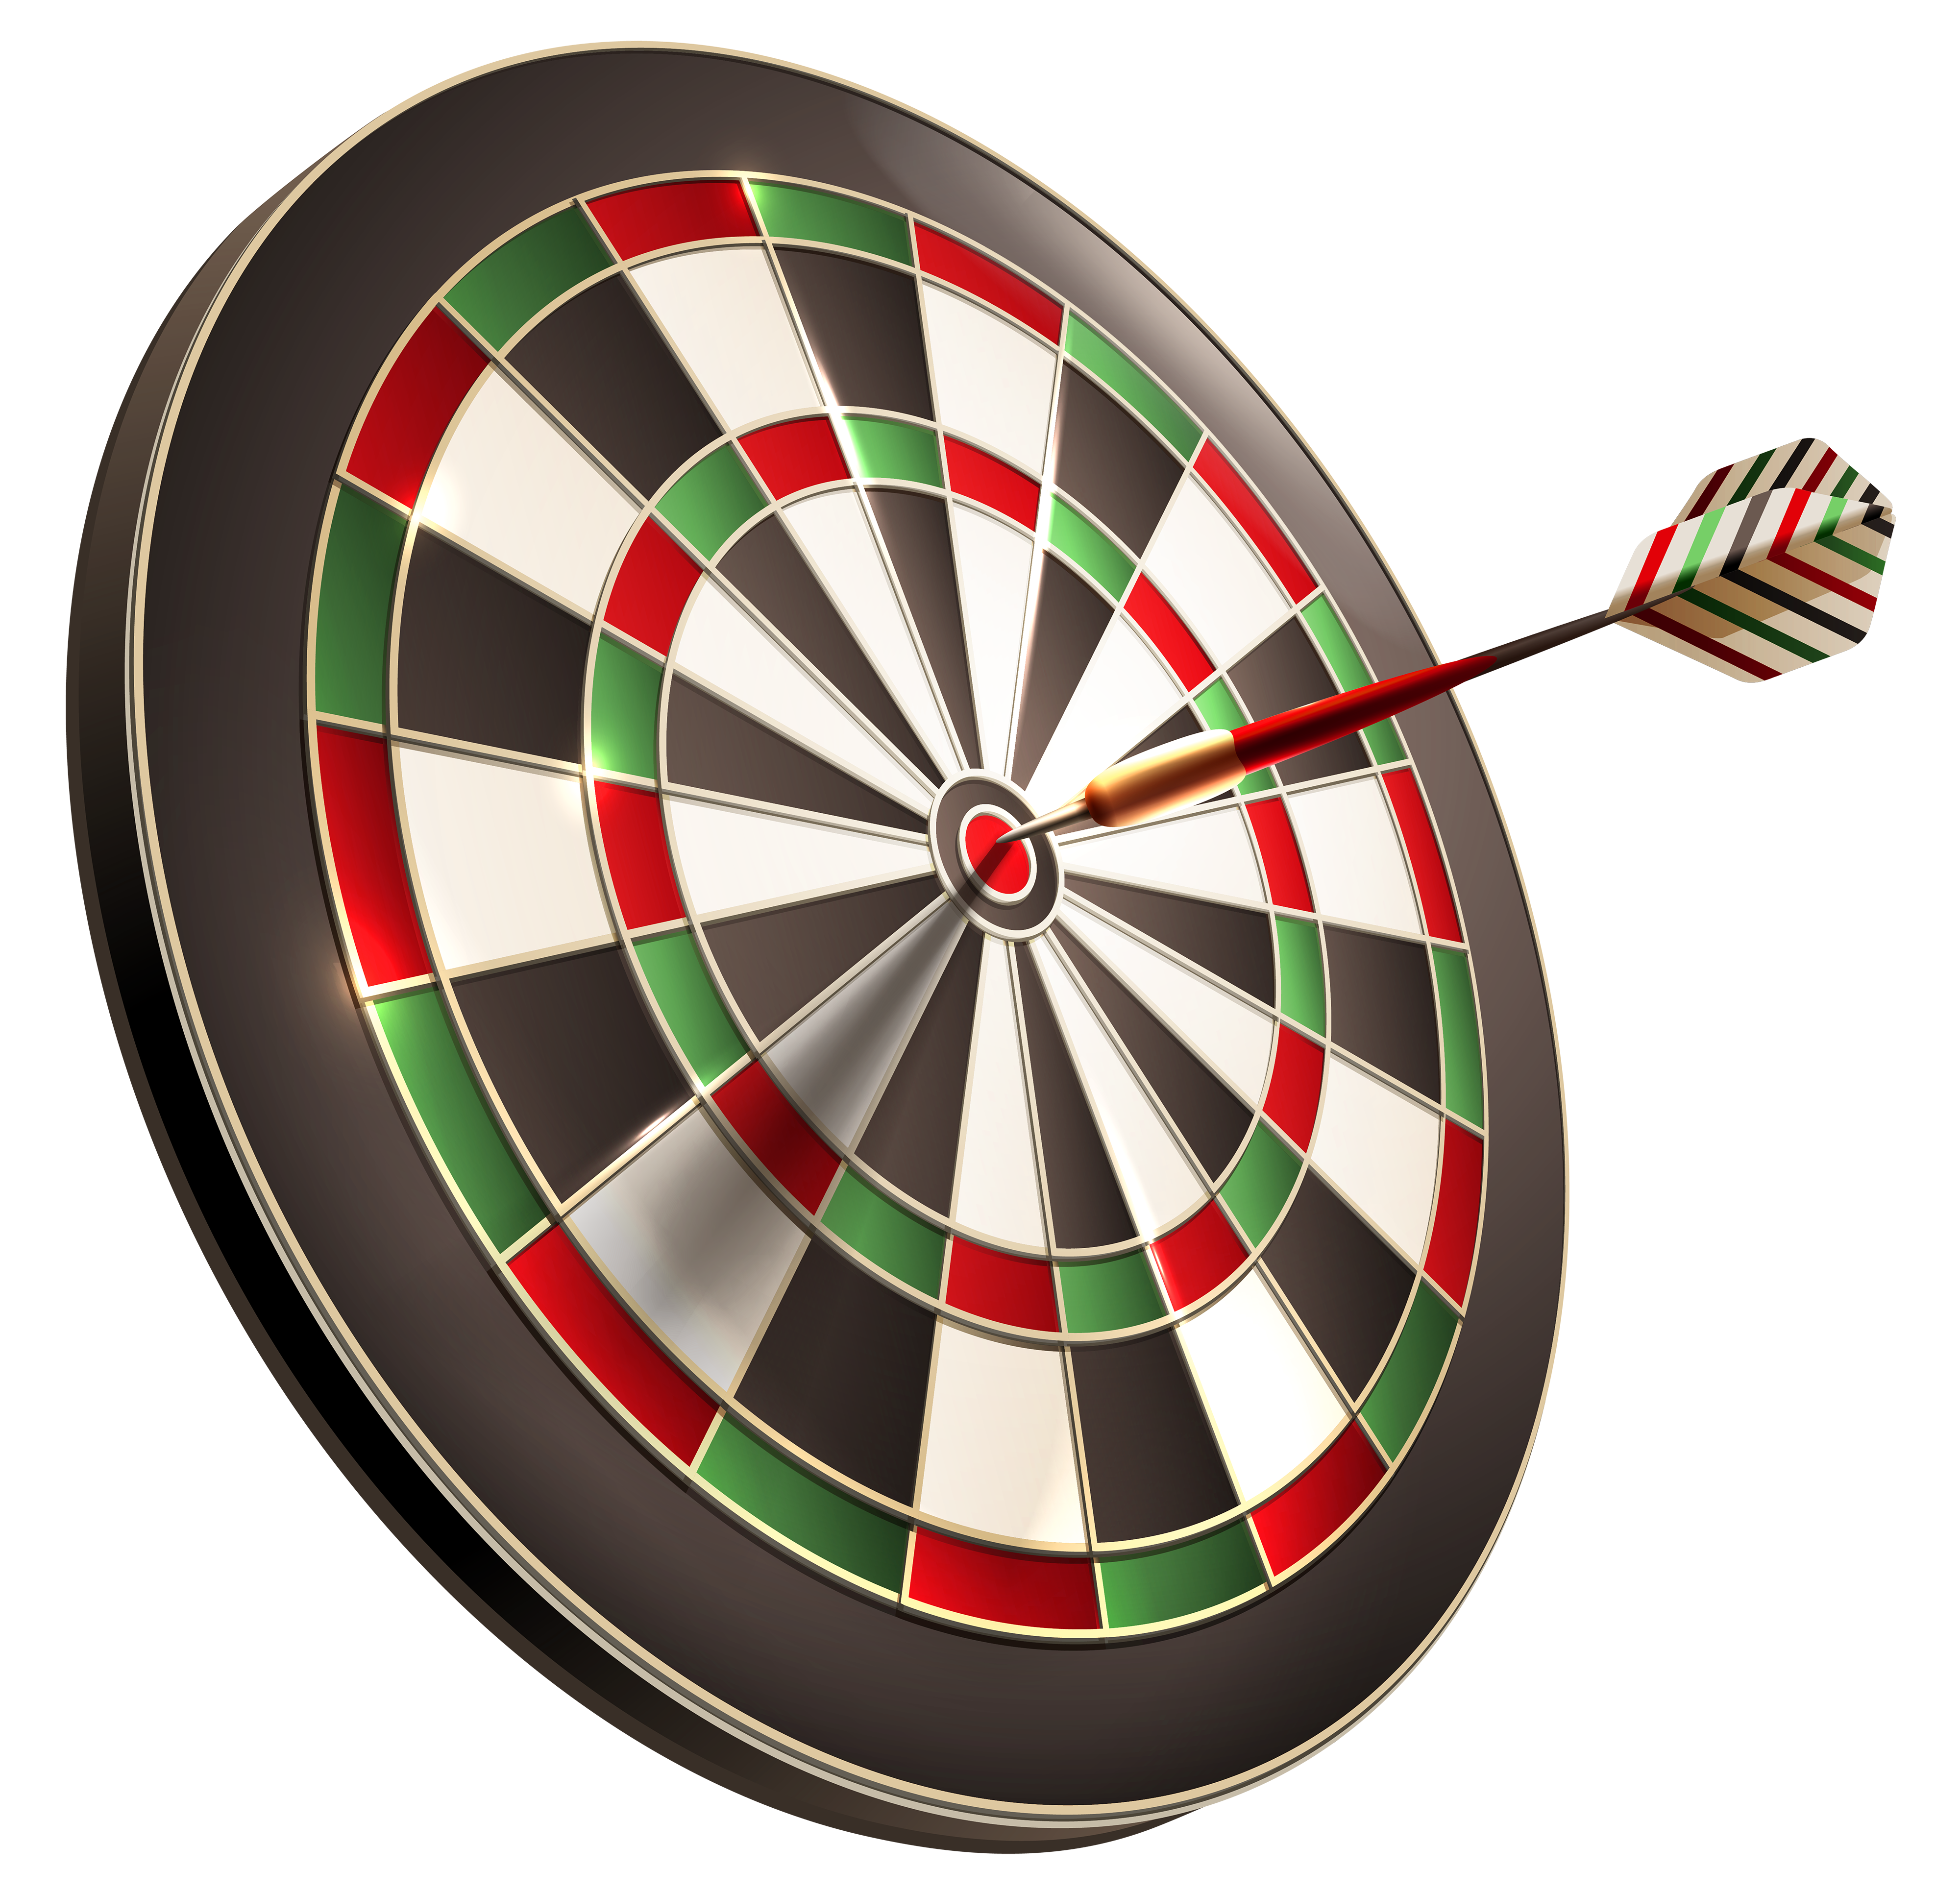 Png best web. Darts clipart jpg freeuse library